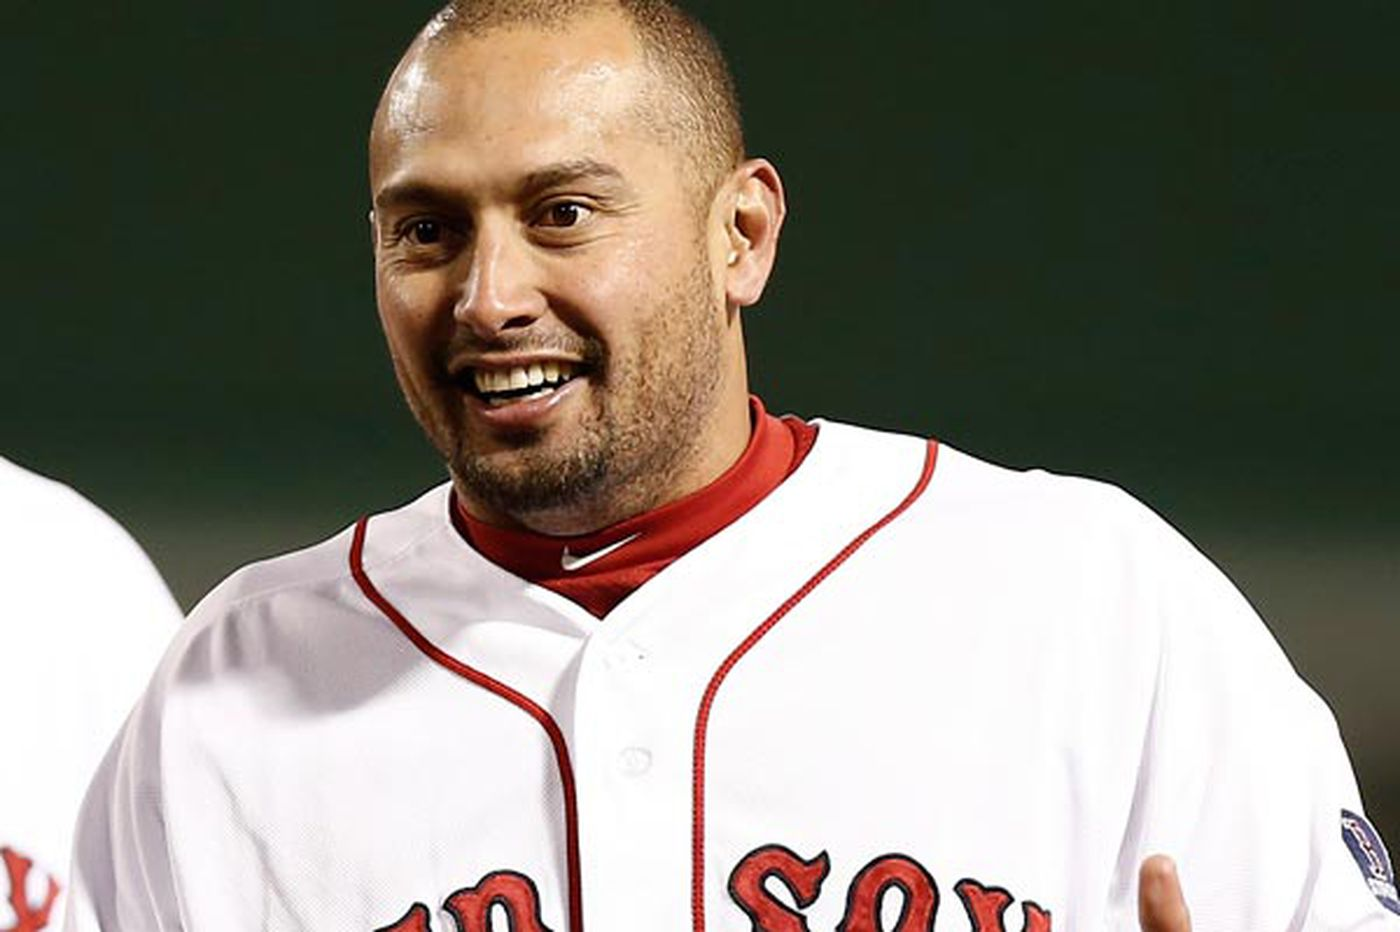 On deck for Phillies: Shane Victorino